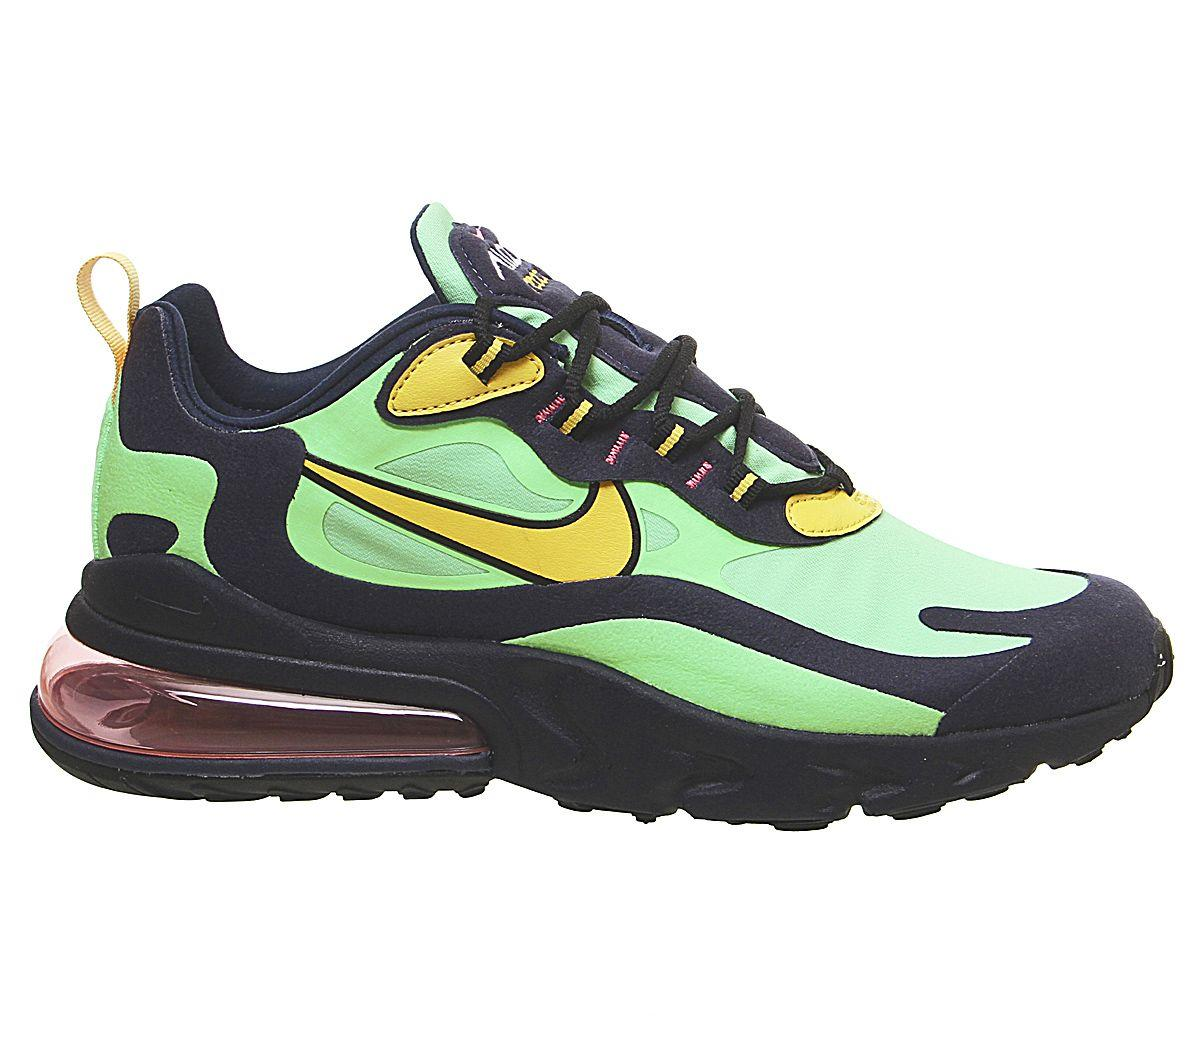 Vacaciones Entender mal Vinagre  Nike Rubber Air Max 270 React Running Shoes in Black Green (Green) for Men  - Save 65% - Lyst